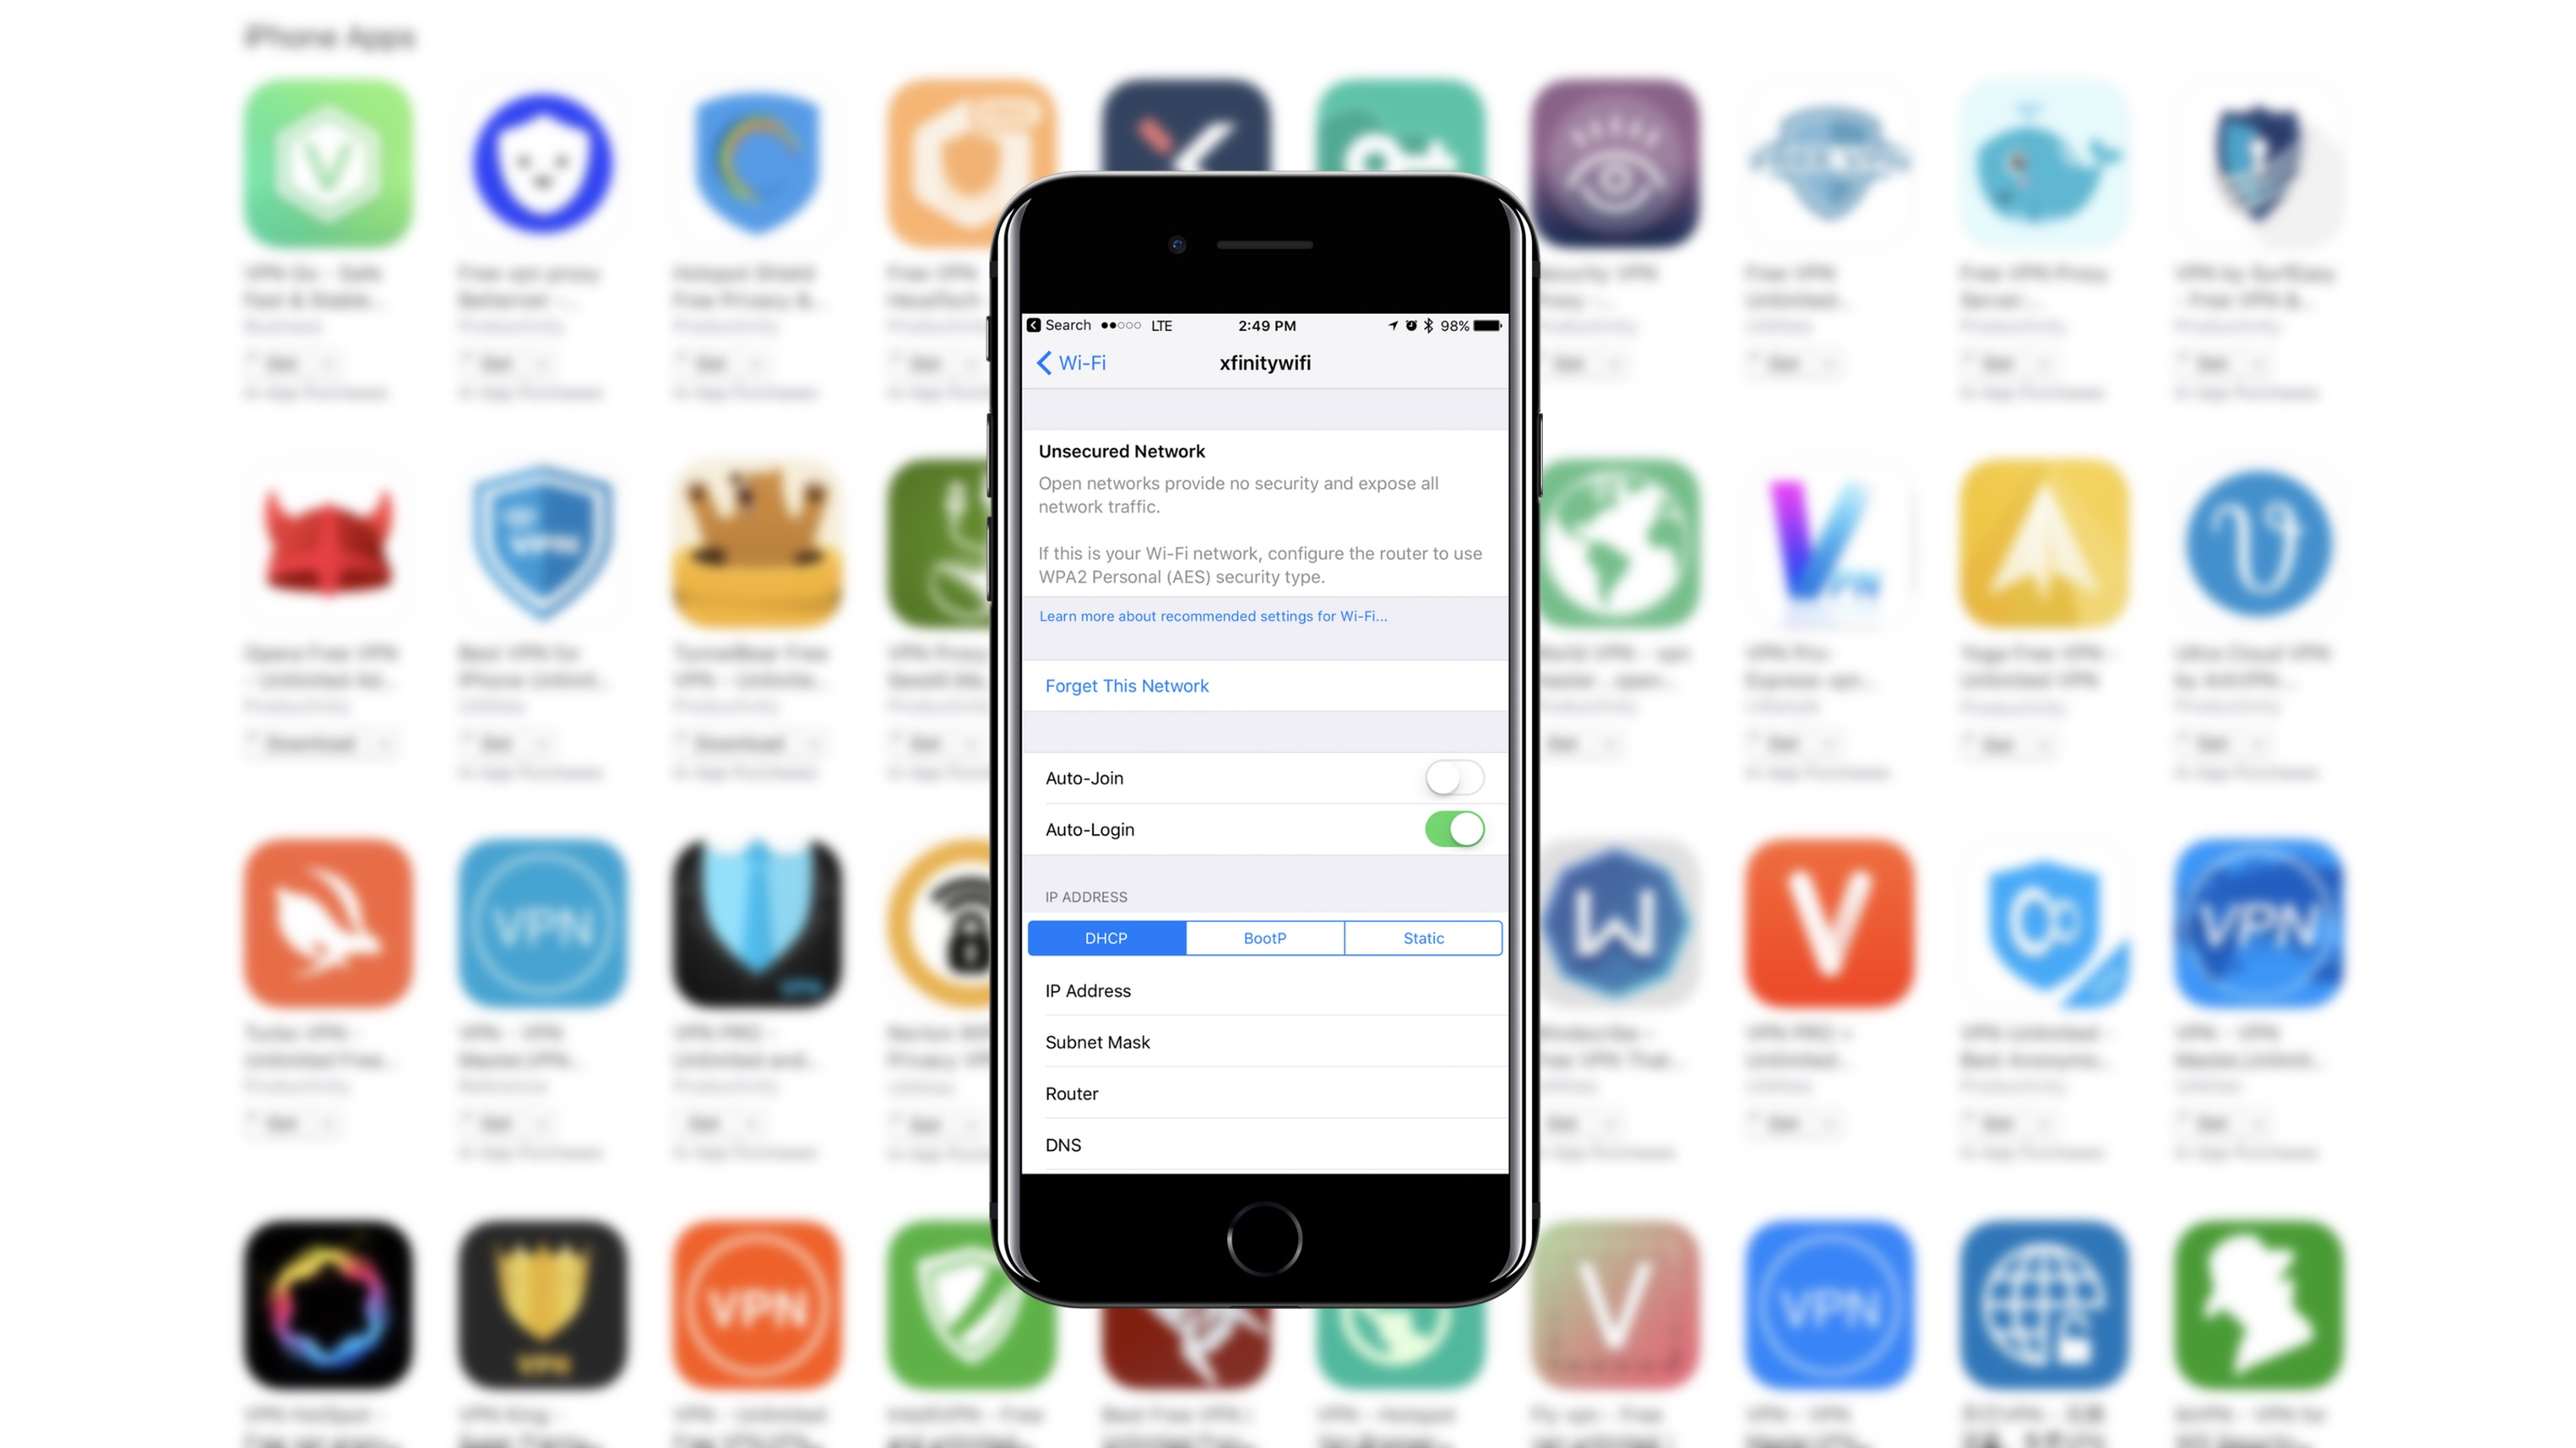 The Very Best VPN Apps for Your iPhone and iPad